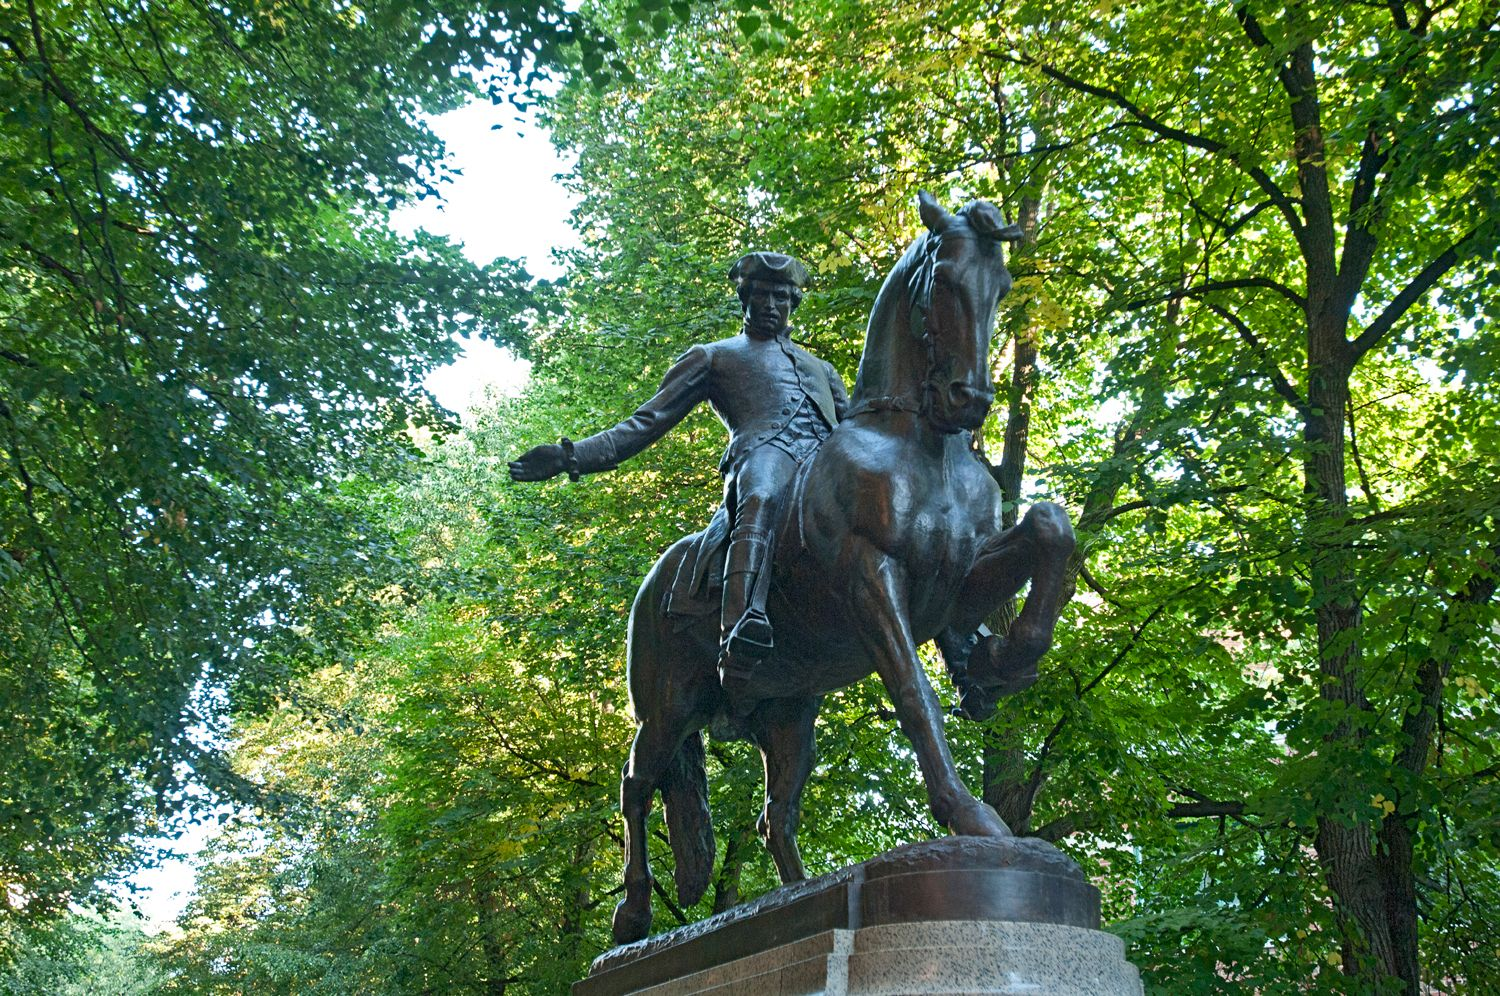 Bronze Statue of Paul Revere